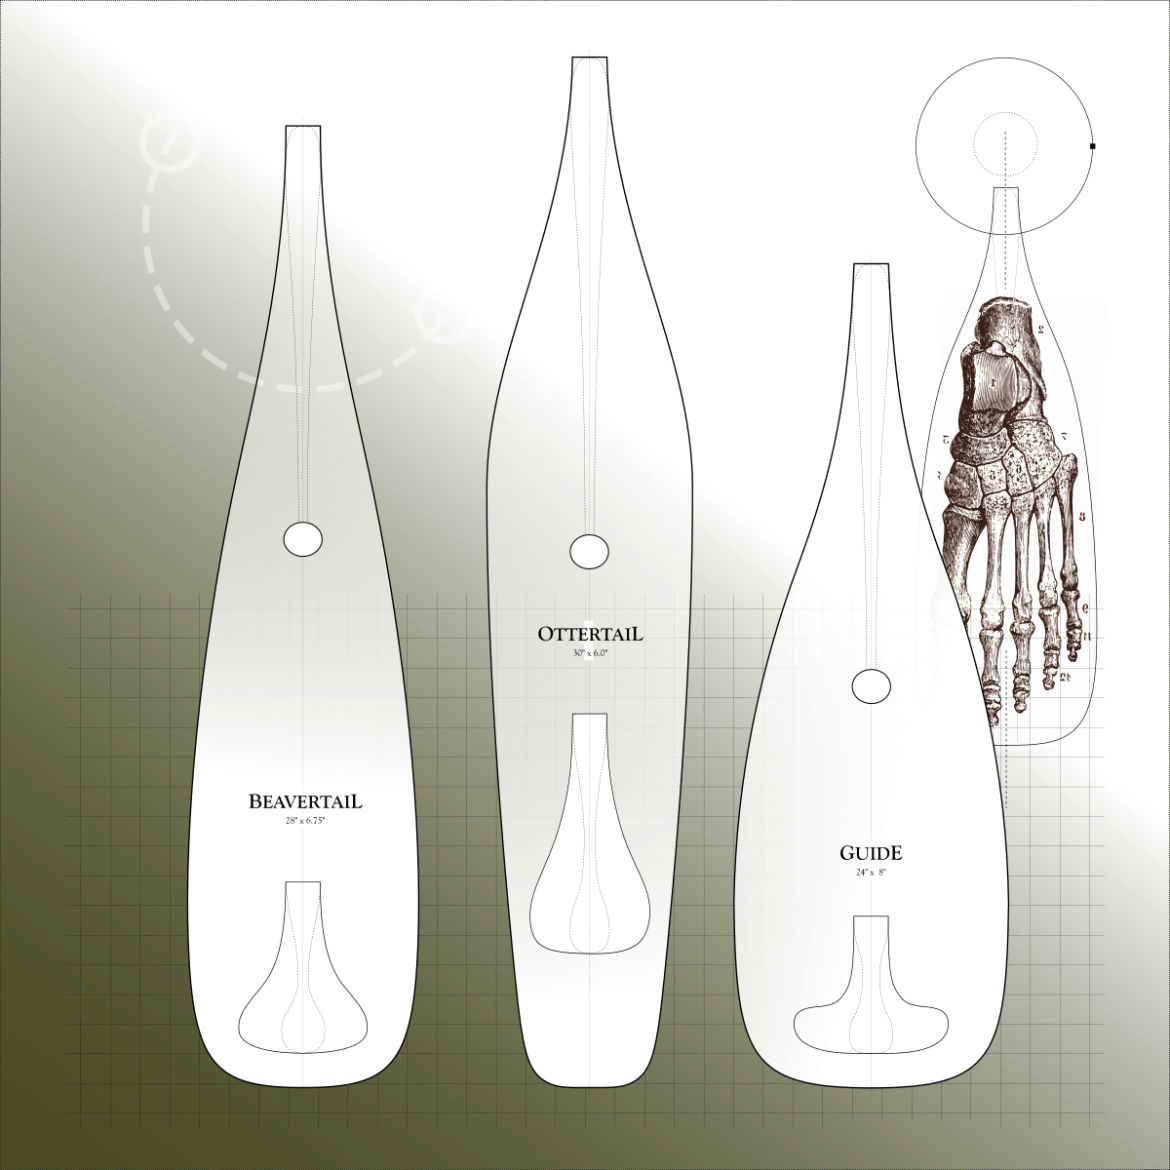 Paddle Templates for Making Your Own Canoe Paddle